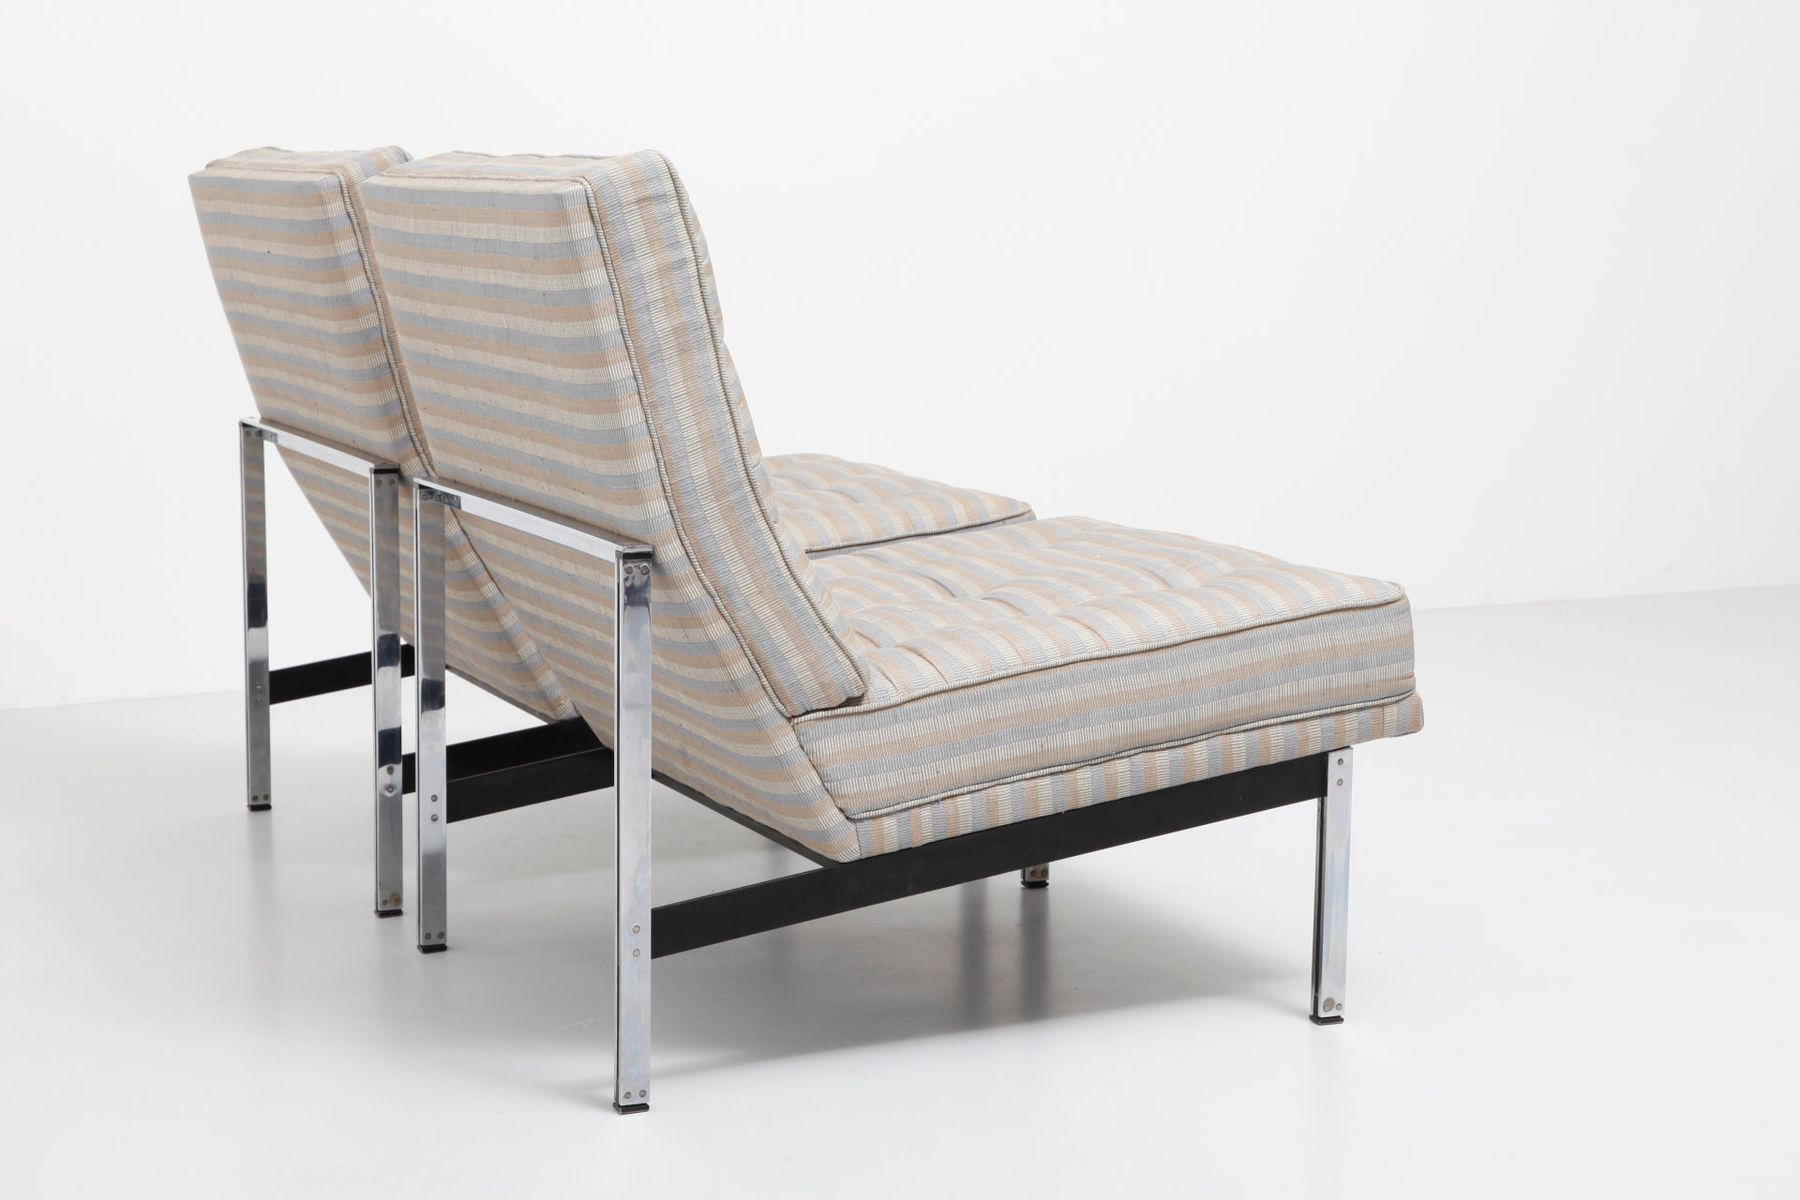 Lounge chairs by florence knoll for knoll int set of 2 for sale at pamono - Knoll inc chairs ...